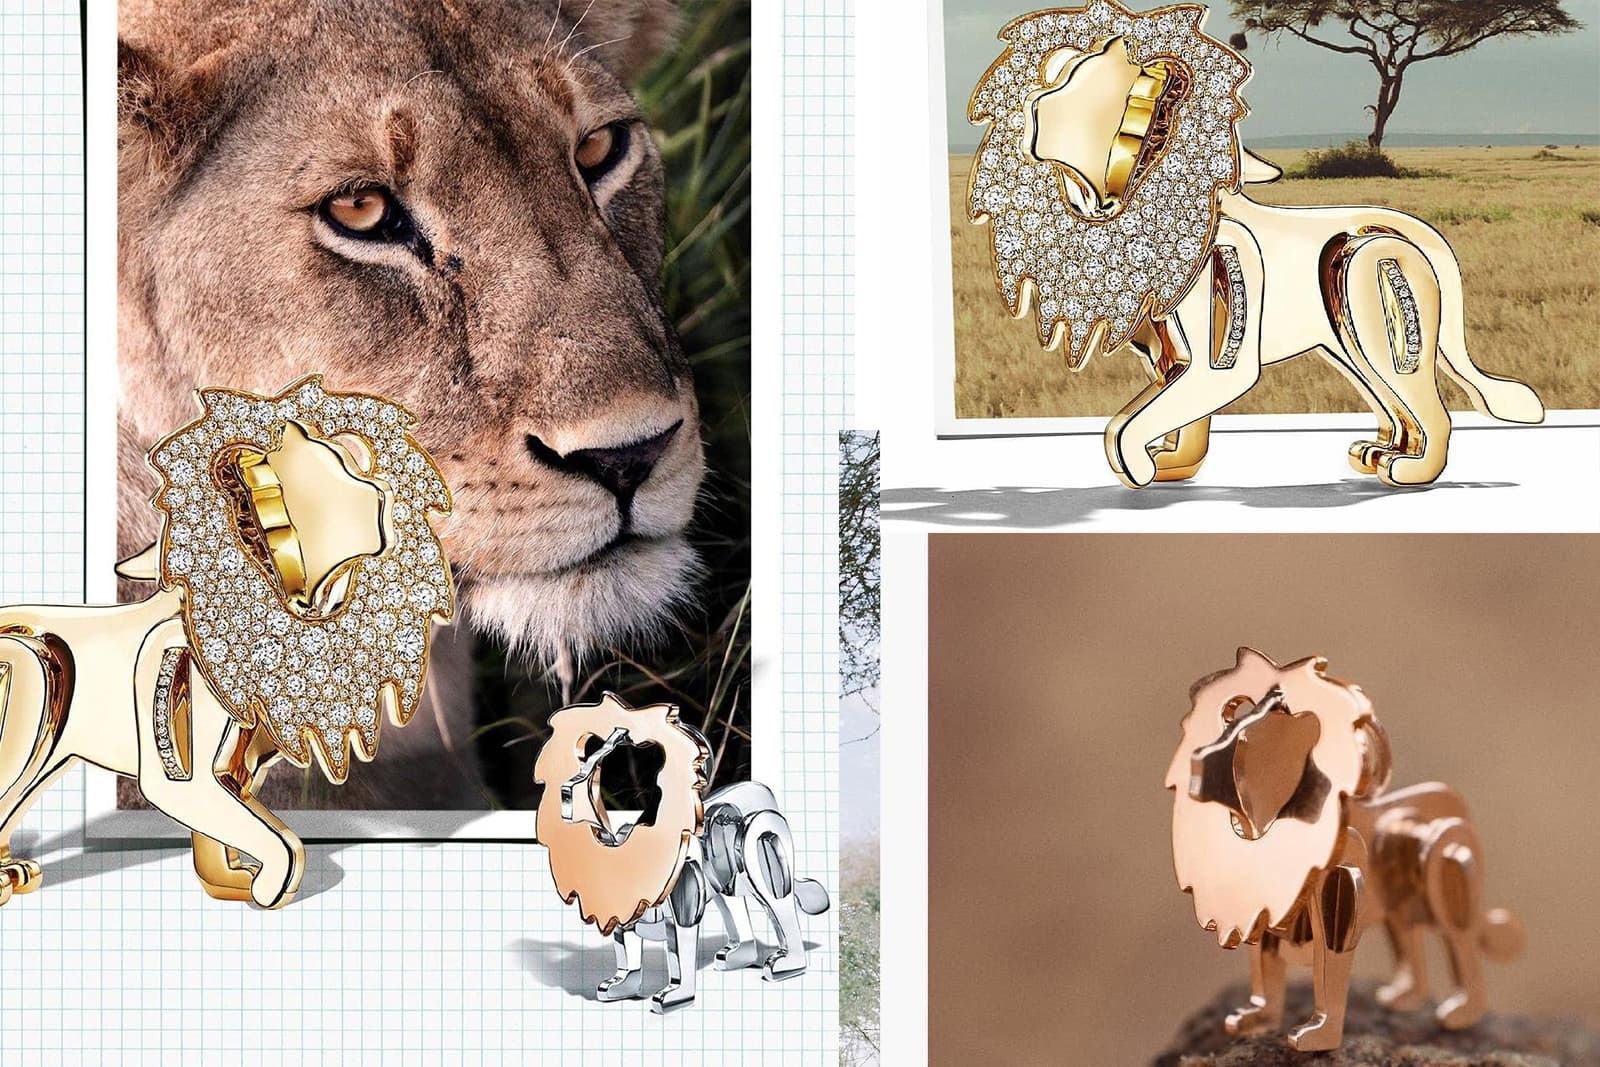 Tiffany & Co. launched the Save the Wild collection in 2017, with 100% of profits donated to the Wildlife Conservation Network